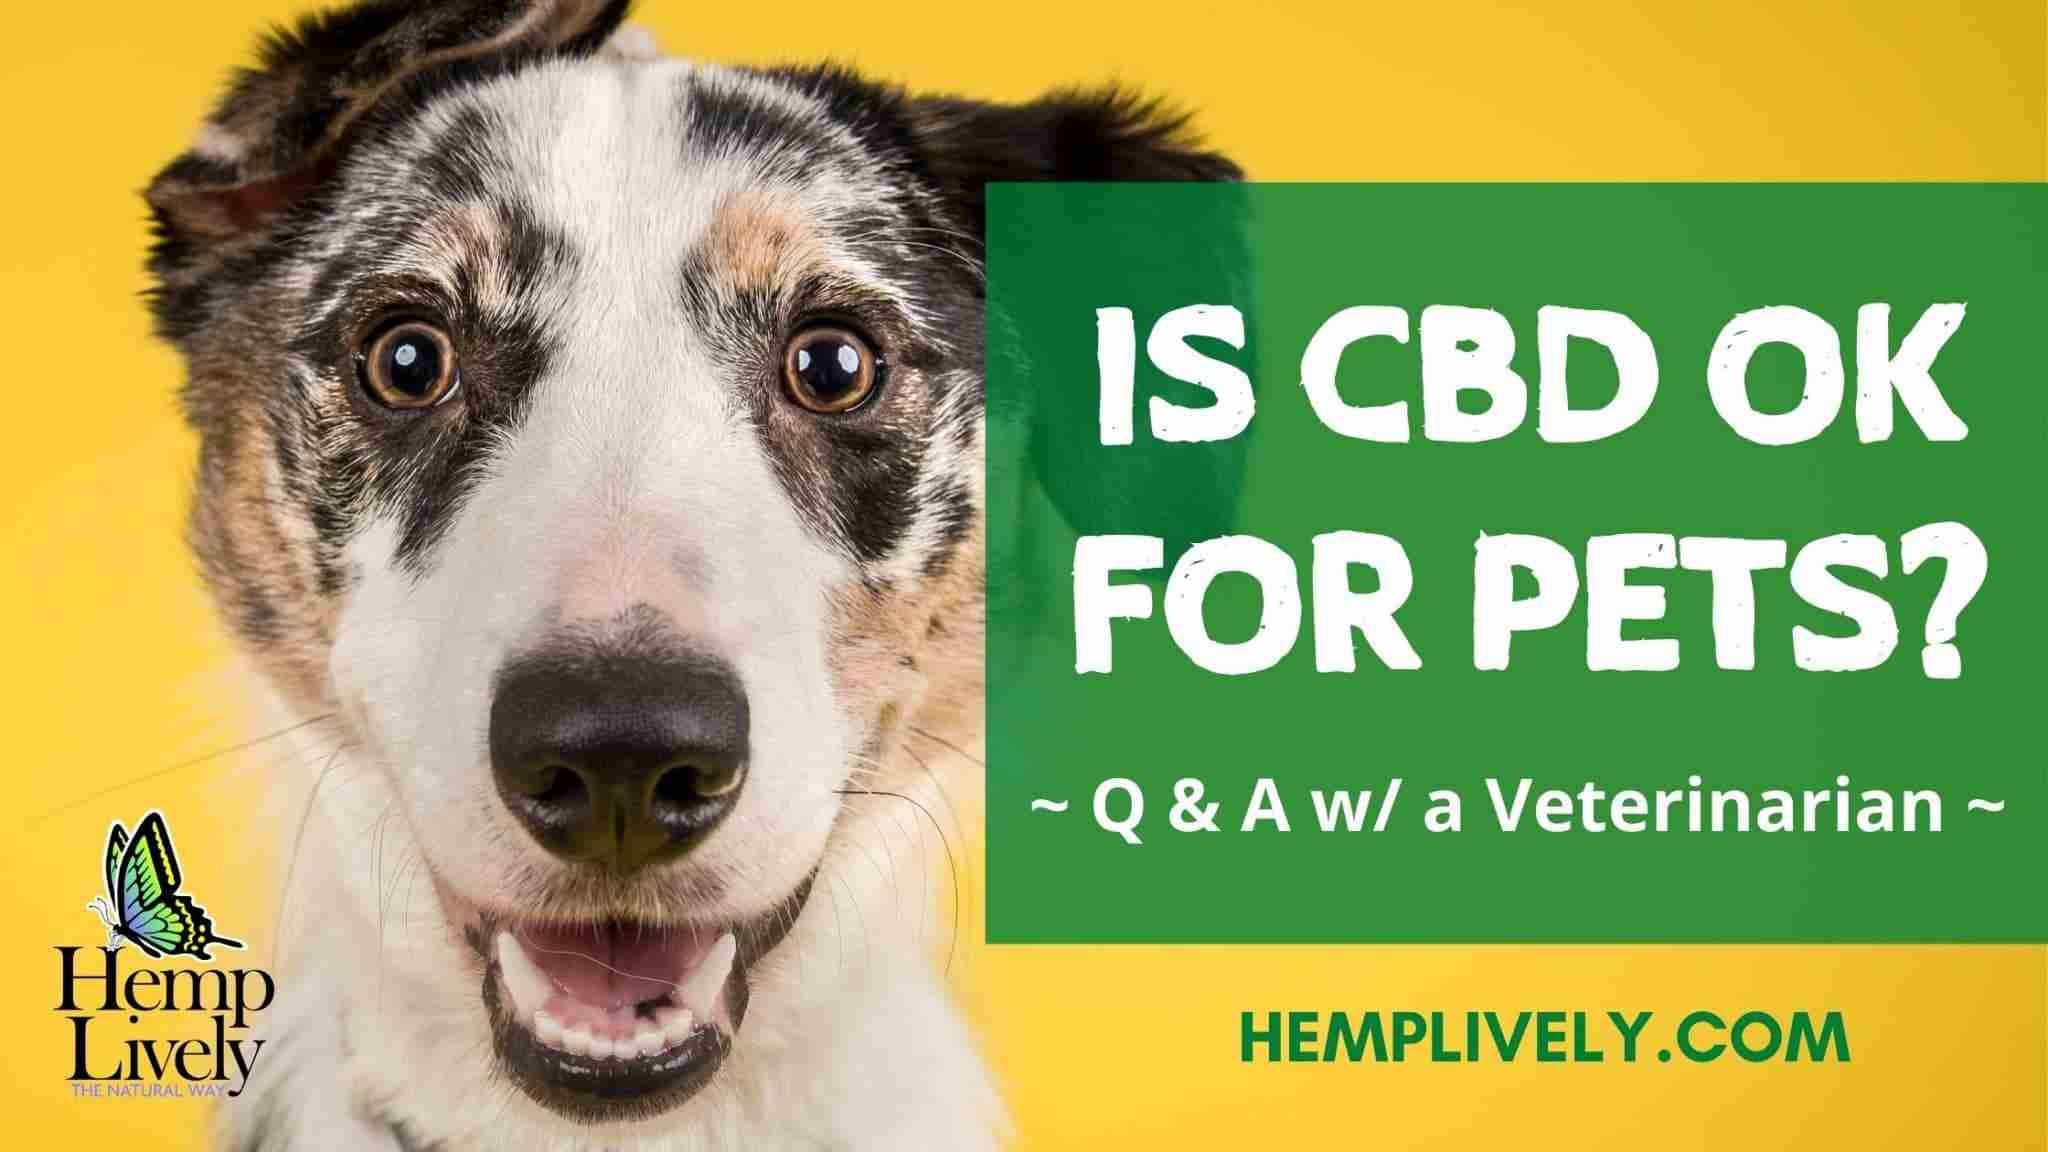 Q & A with a Veterinarian: Is CBD Okay for Pets?